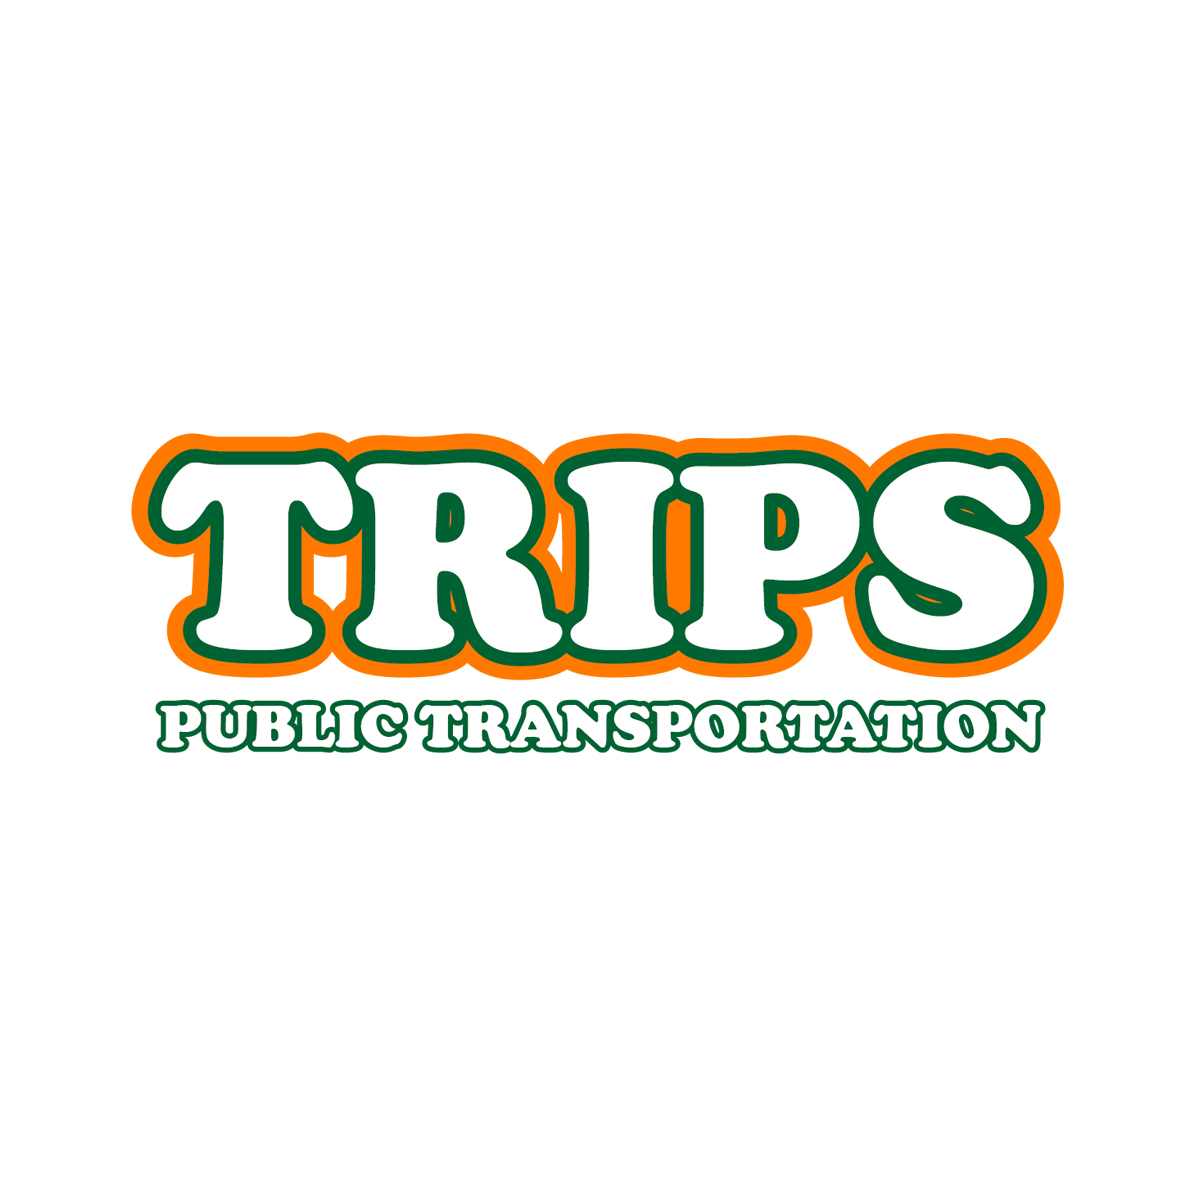 bus driver public transport logo